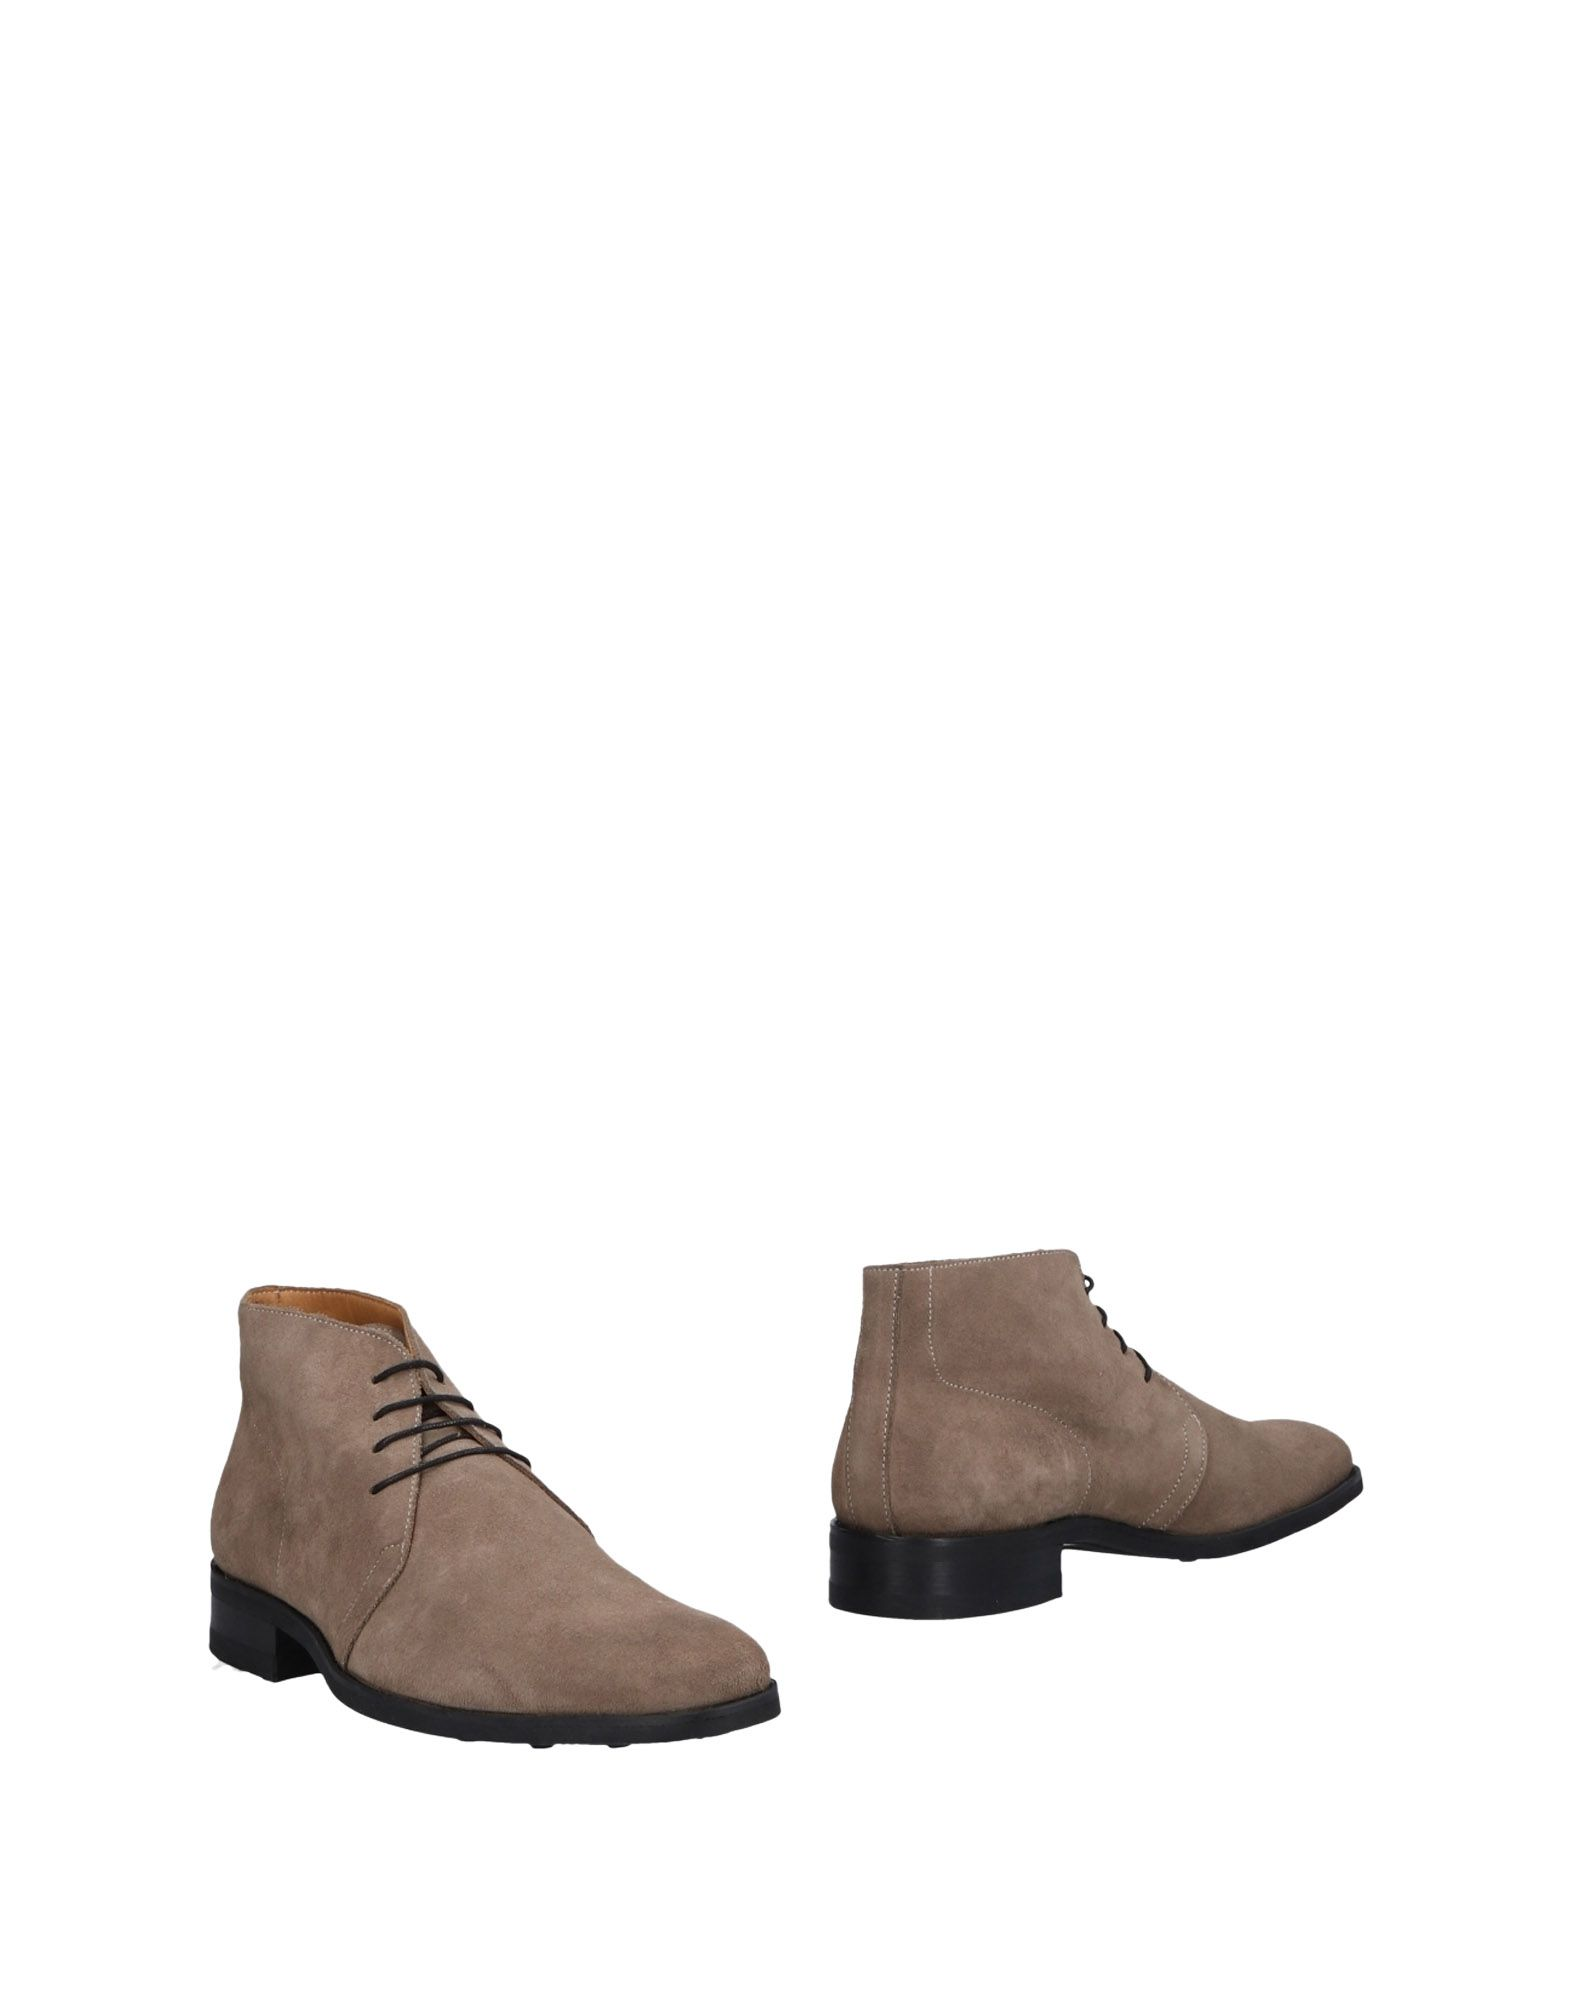 Bottine Max Estin 1961 Femme - Bottines Max Estin 1961 sur